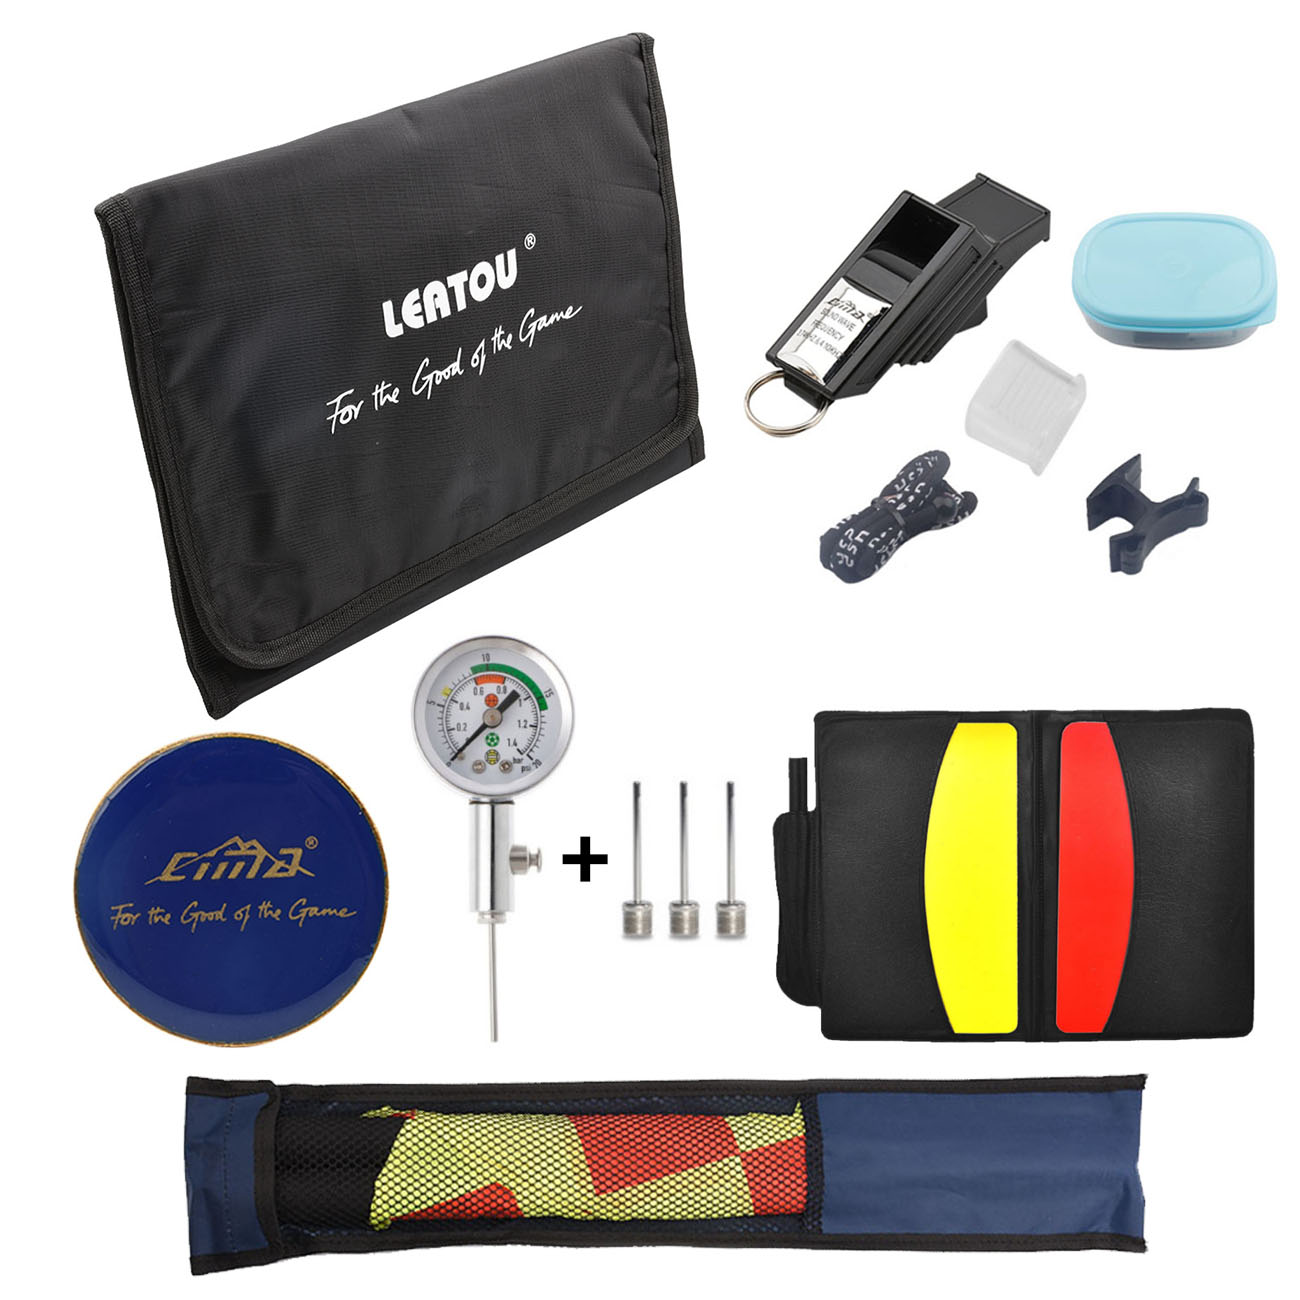 CIMA Soccer Whistle Football Referee Wallet Coin Cards Linesman Flags Ball Pressure Barometer Set Training Bag Accessories